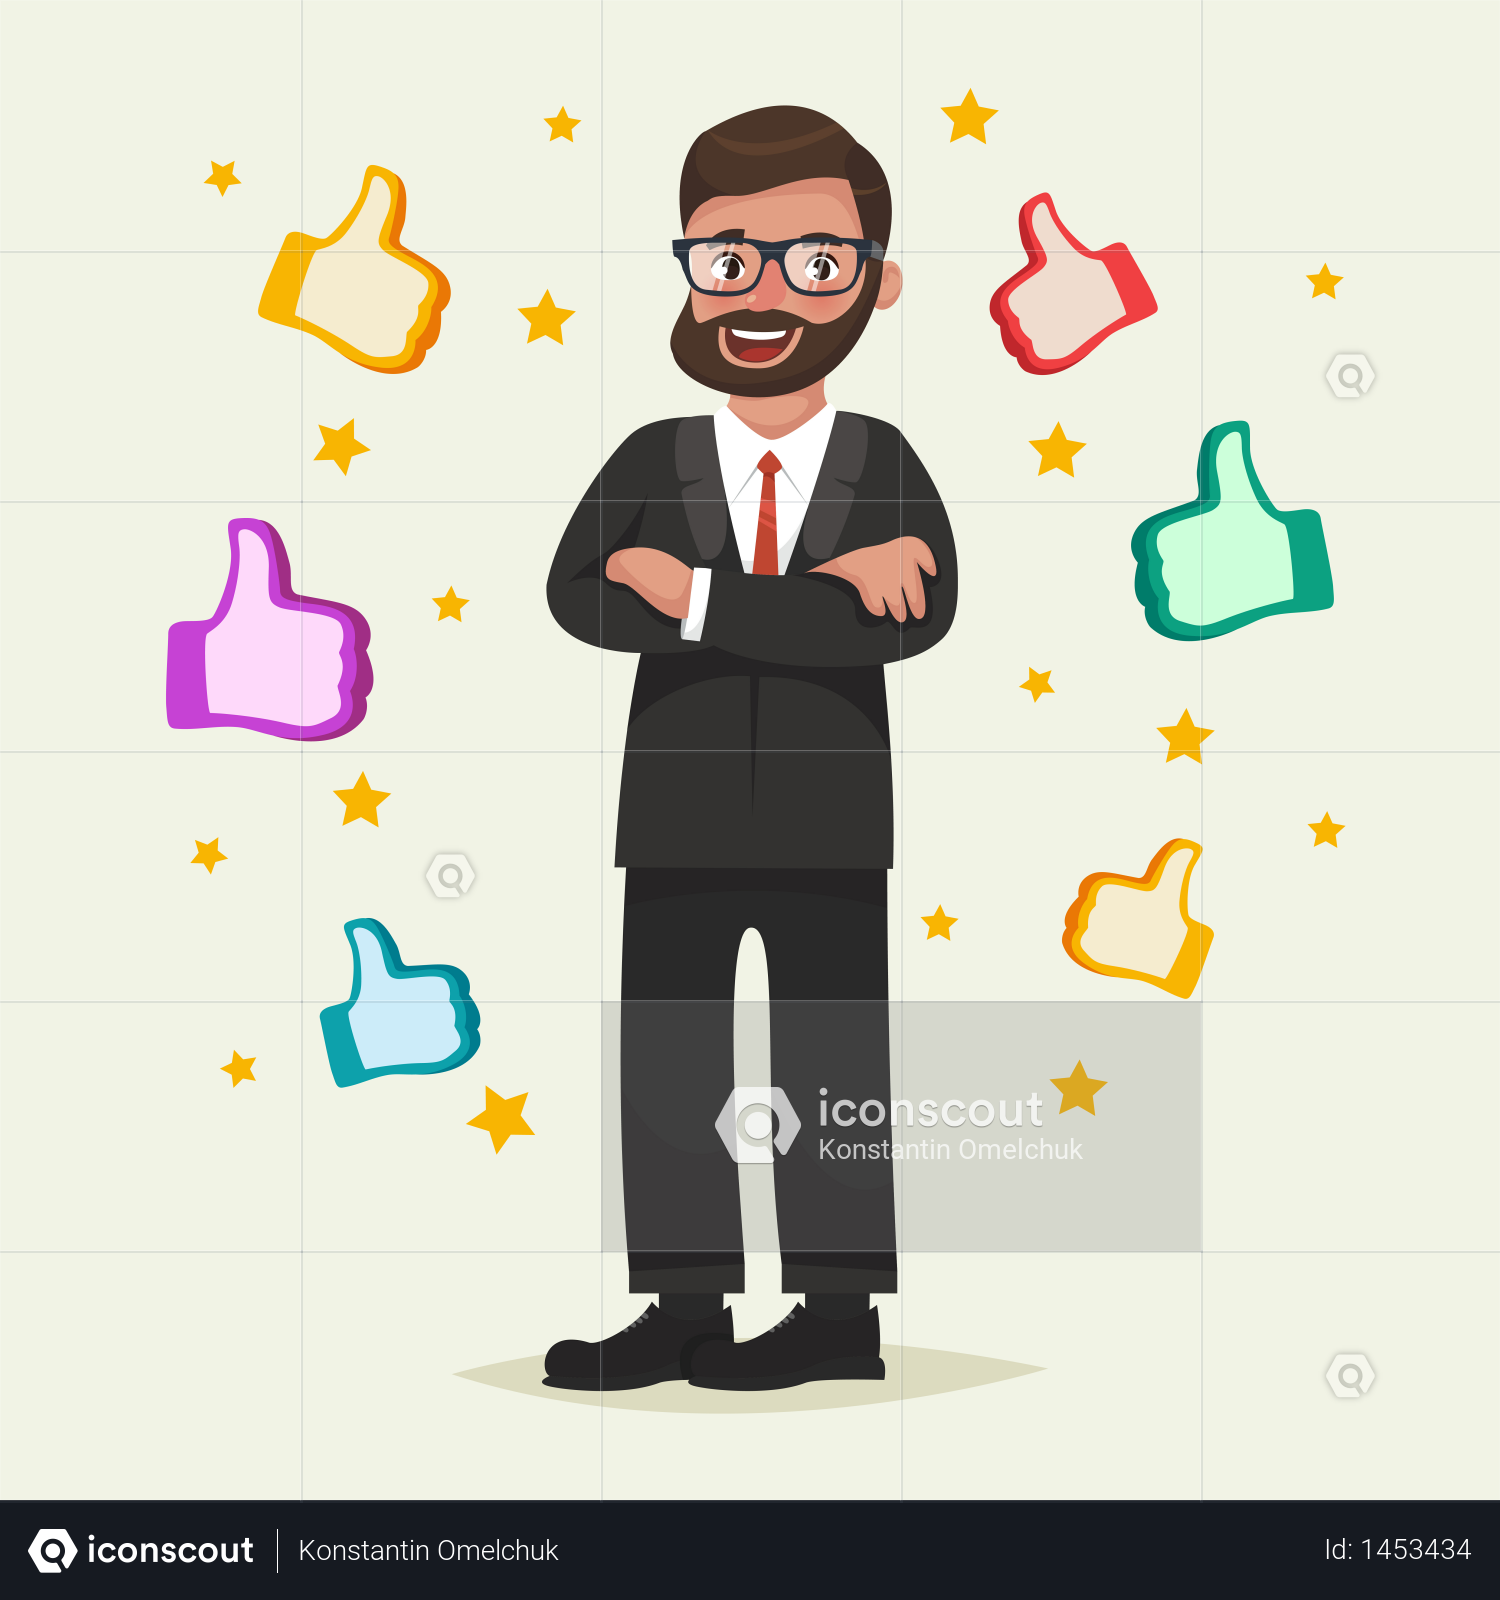 Premium Happy Man In Glasses With Beard With Gesture Like Around Him Illustration Download In Png Vector Format People Illustration Illustration Character Template